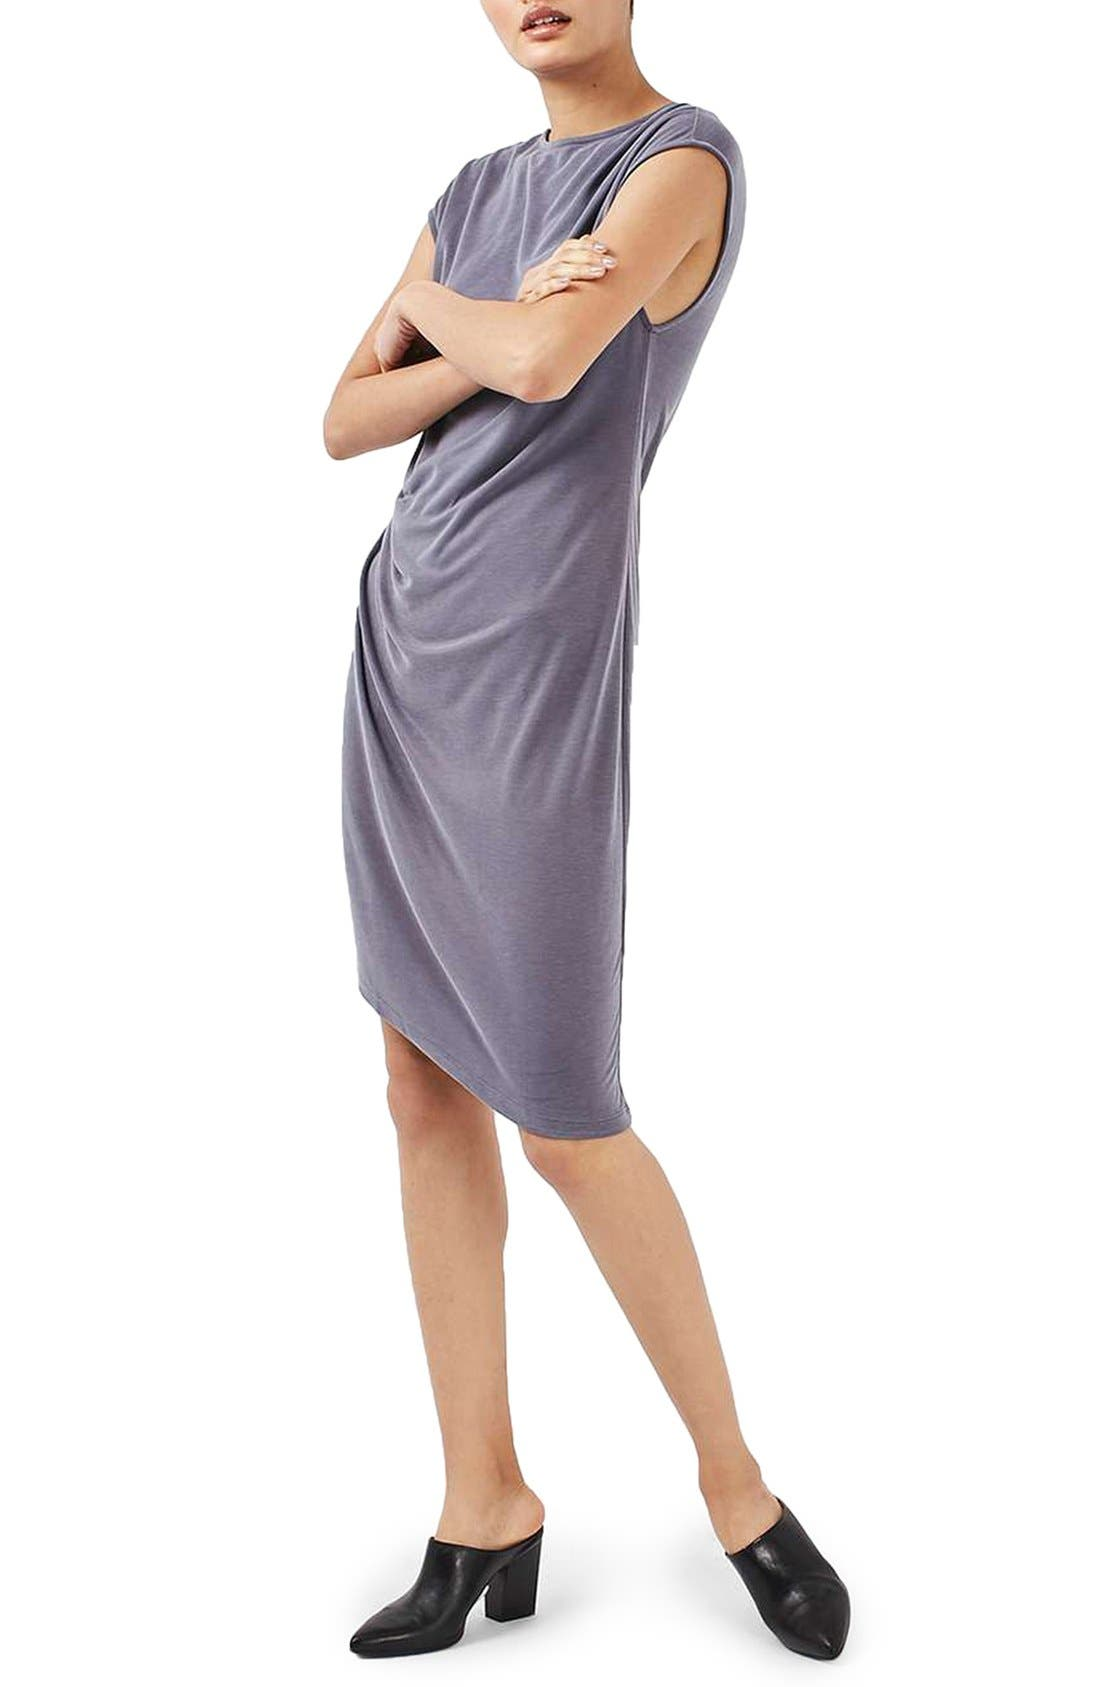 Alternate Image 1 Selected - Topshop Asymmetric Slinky Drape Dress (Regular & Petite)